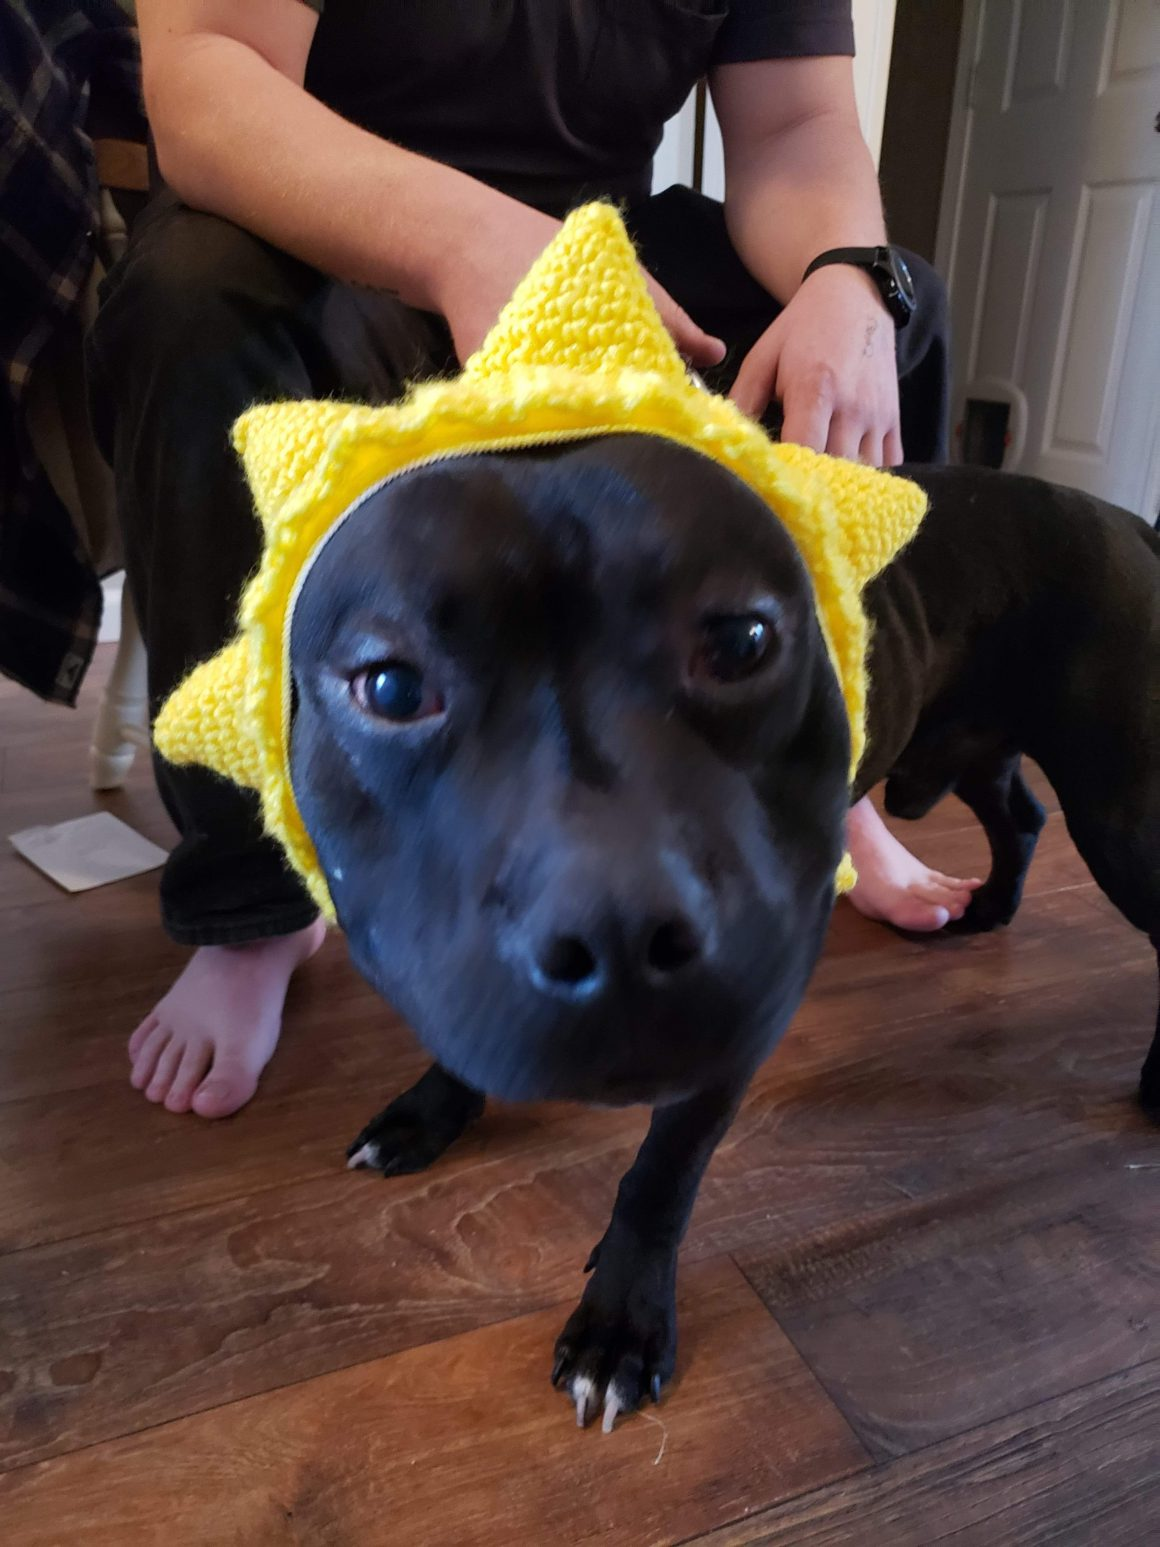 scooter the dog with a star hat